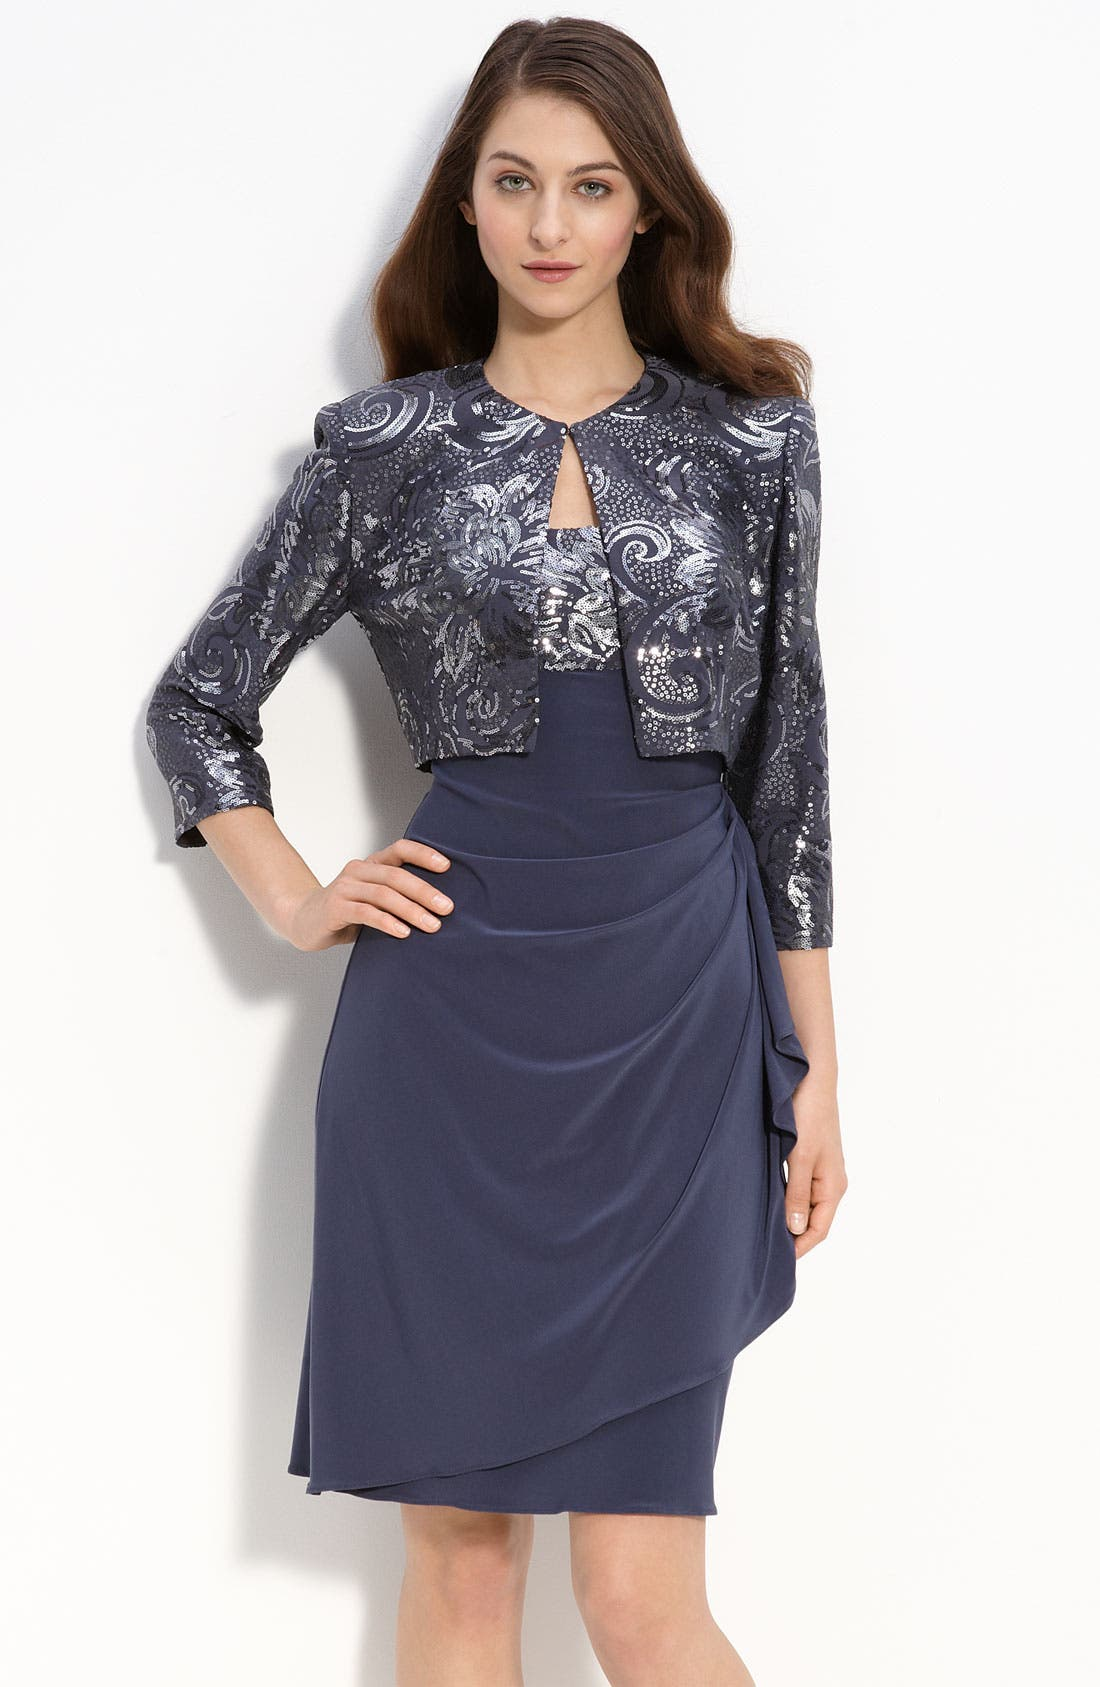 Alternate Image 1 Selected - Alex Evenings Sequin Jersey Sheath Dress & Bolero